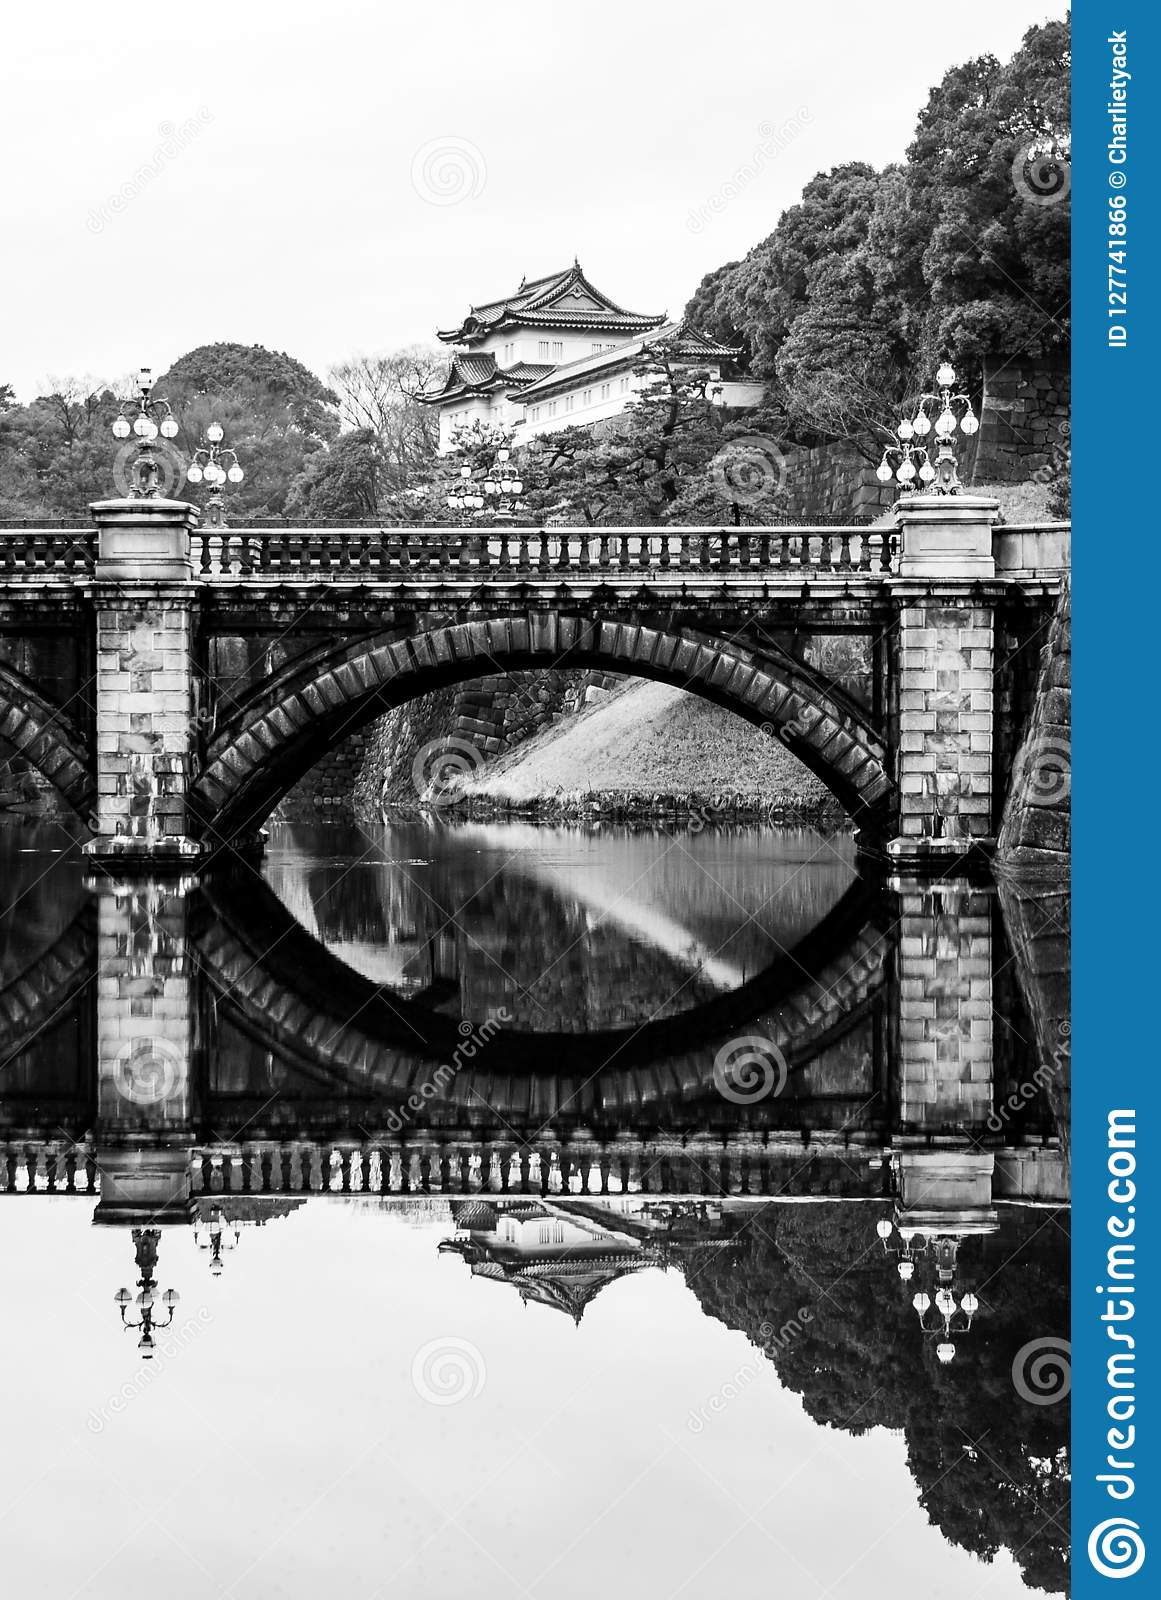 Imperial Palace & Bridge with peaceful moat reflection, Tokyo, Japan - B&W